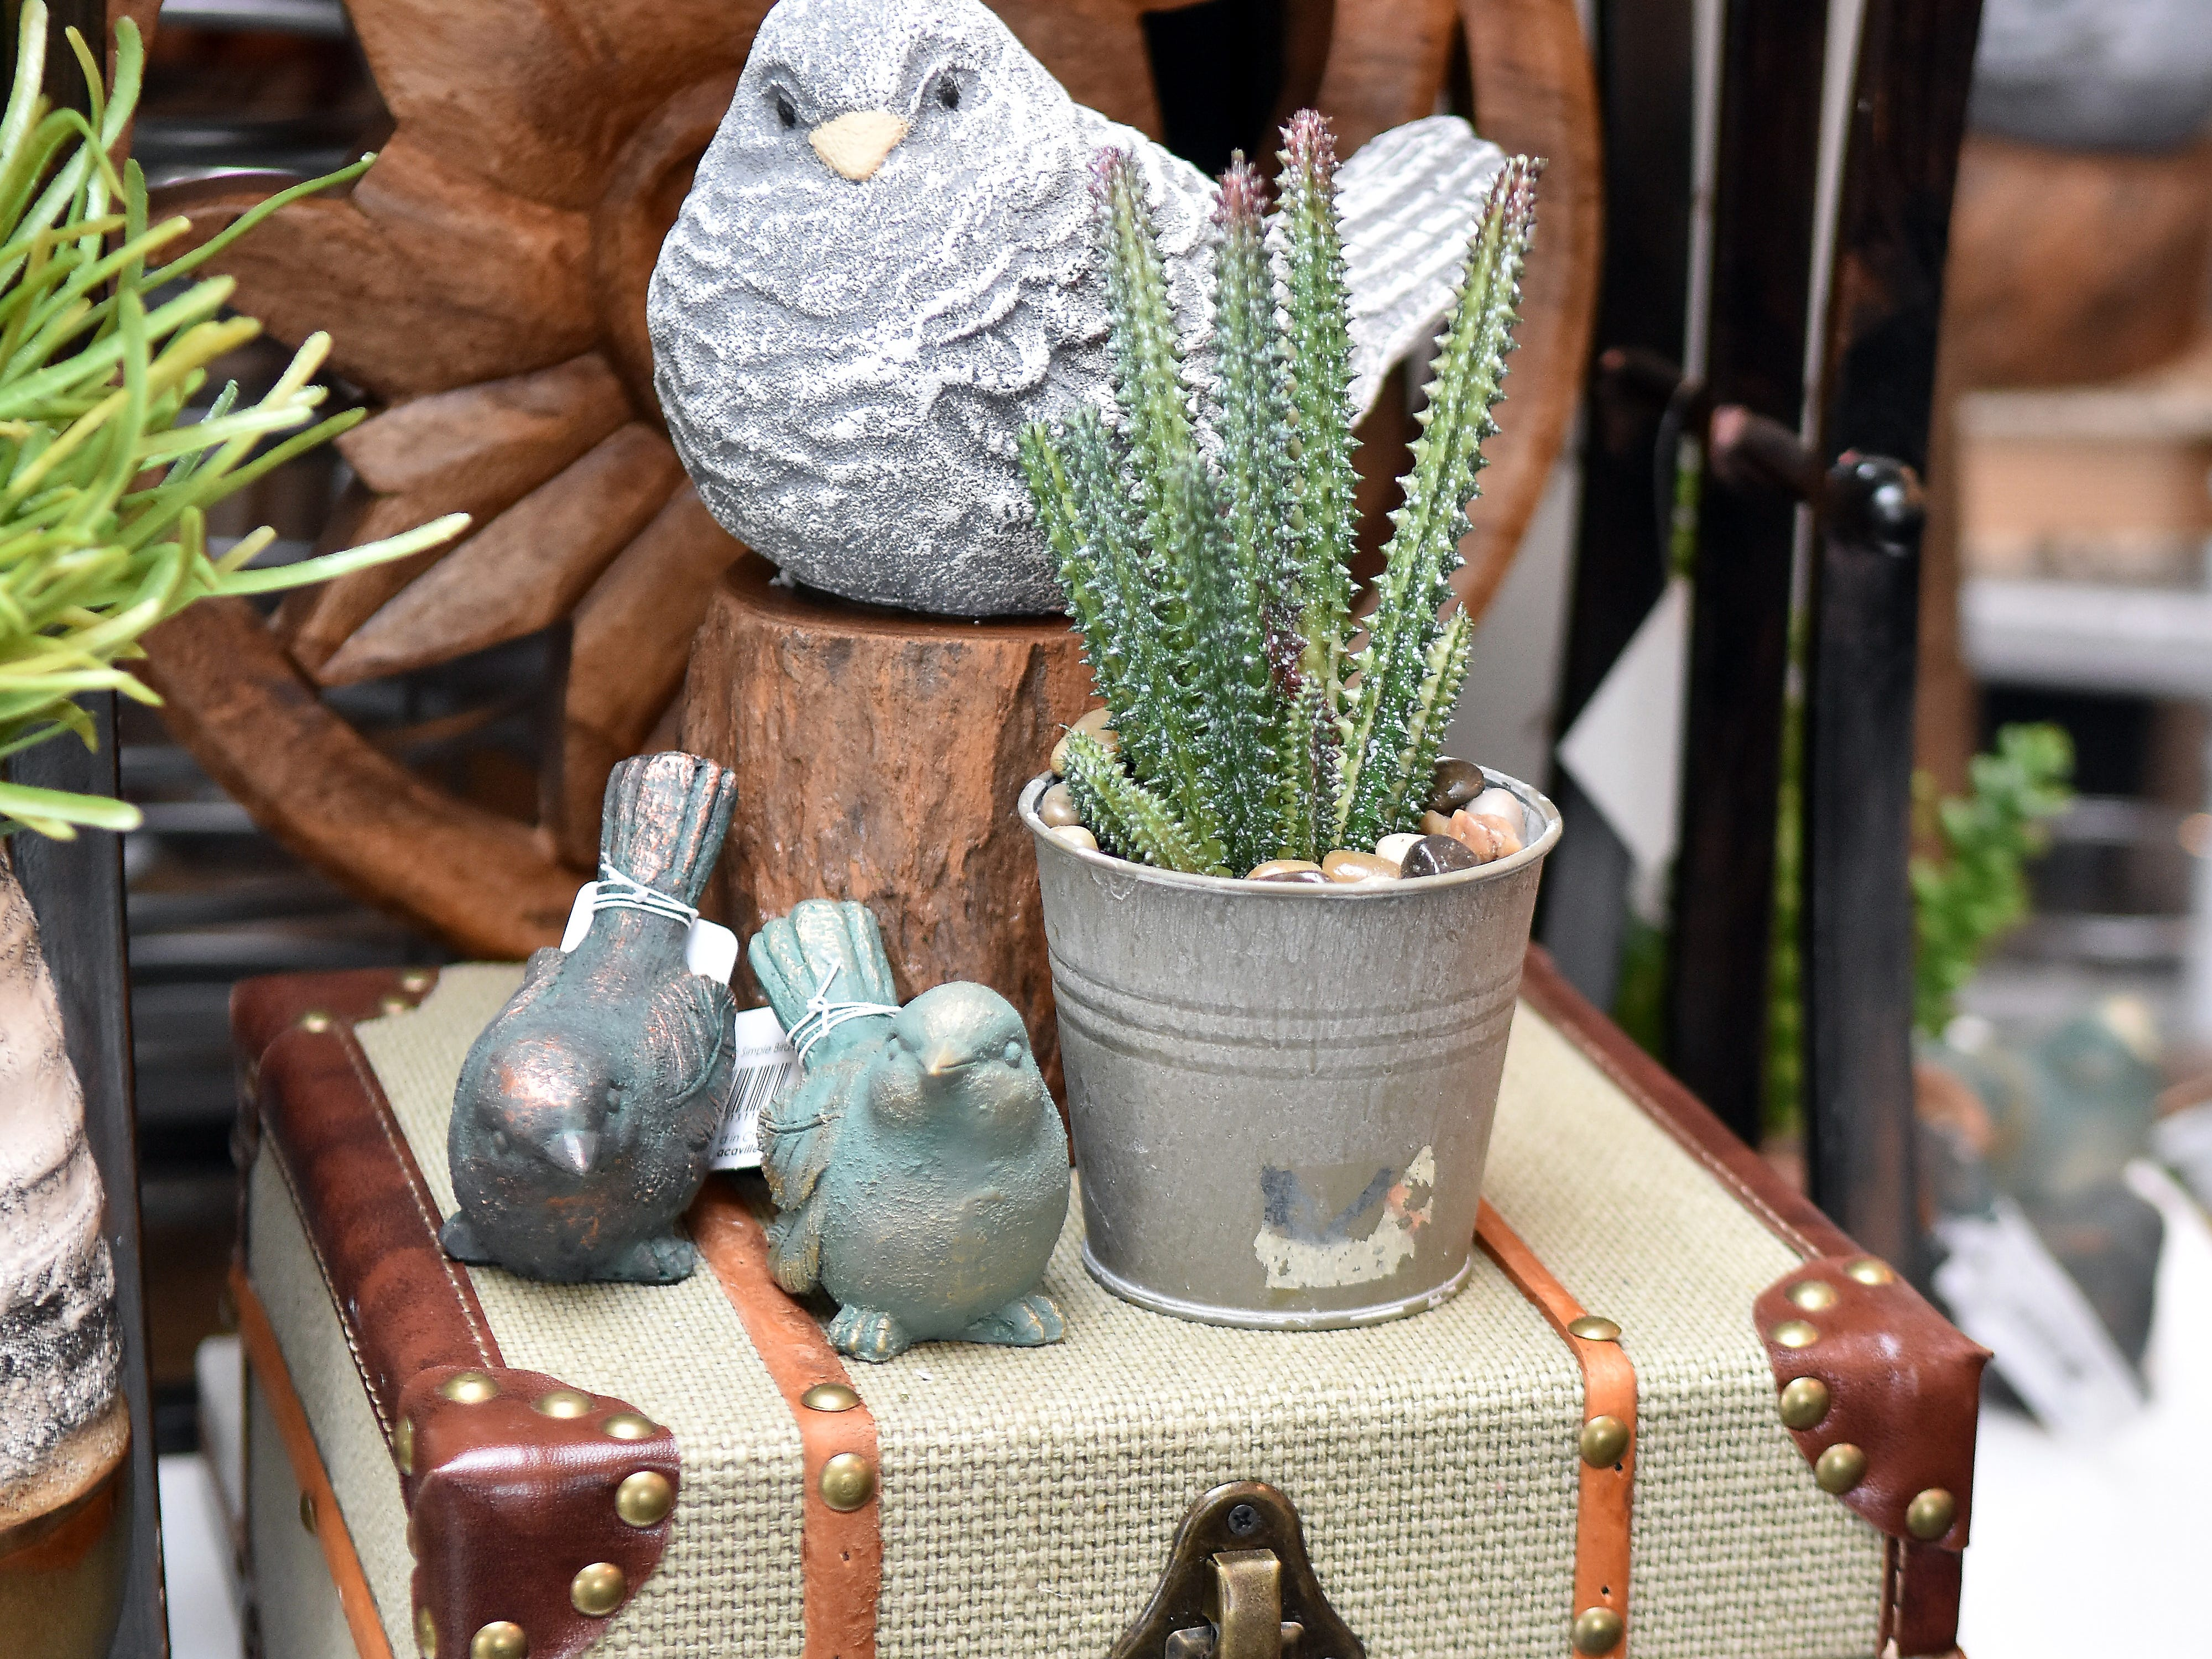 Real Deals offers so many little bird knick knacks. You can almost hear them chirp!